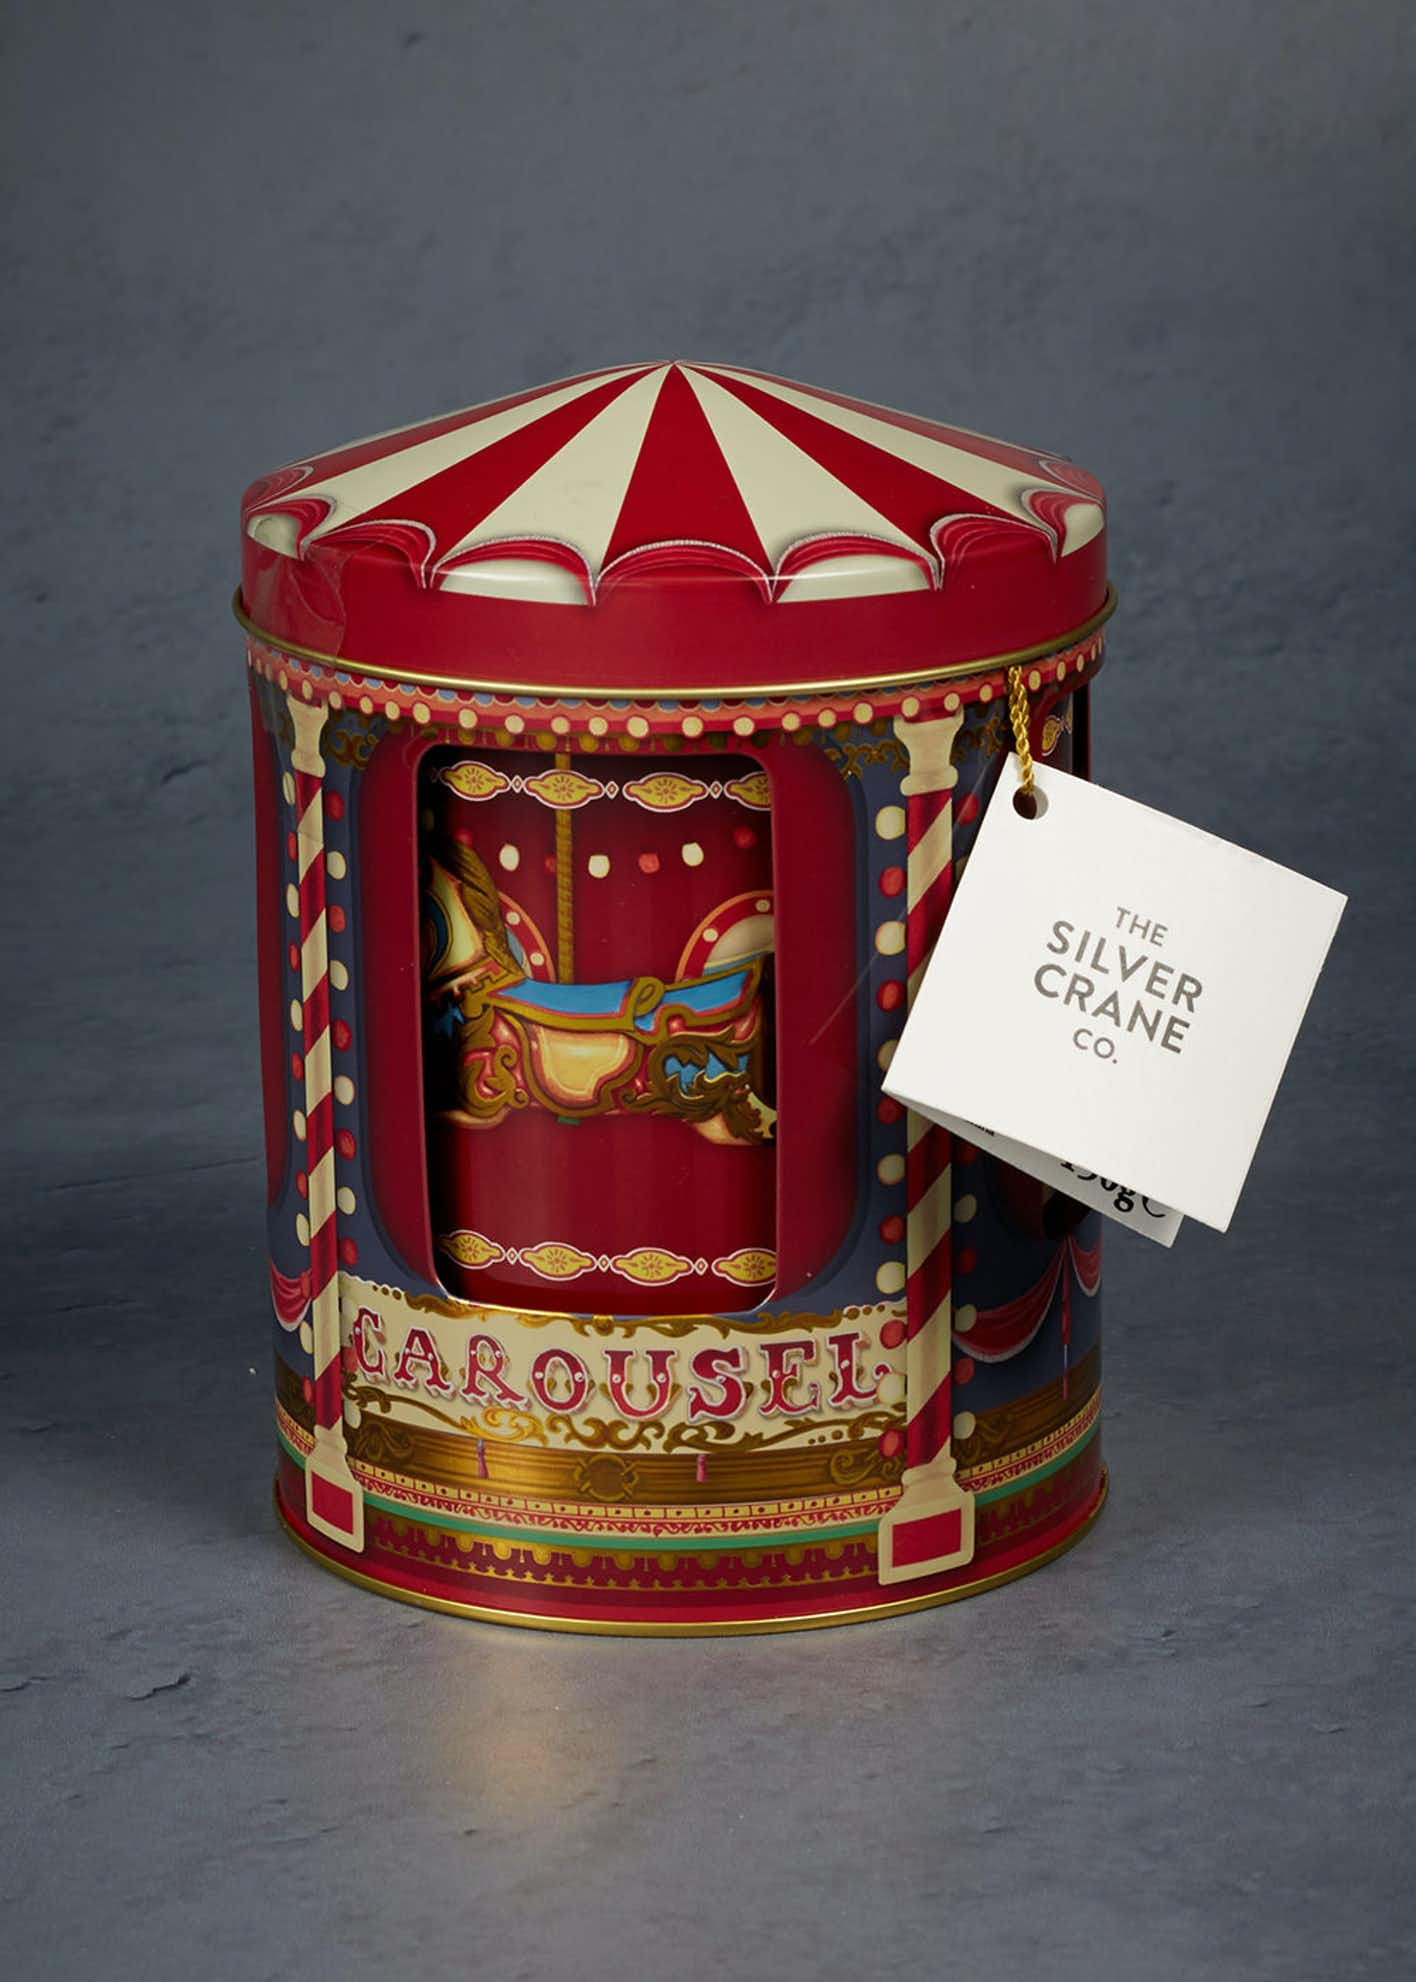 Musical Carousel Chocolate Chip Cookies Tin (150g)